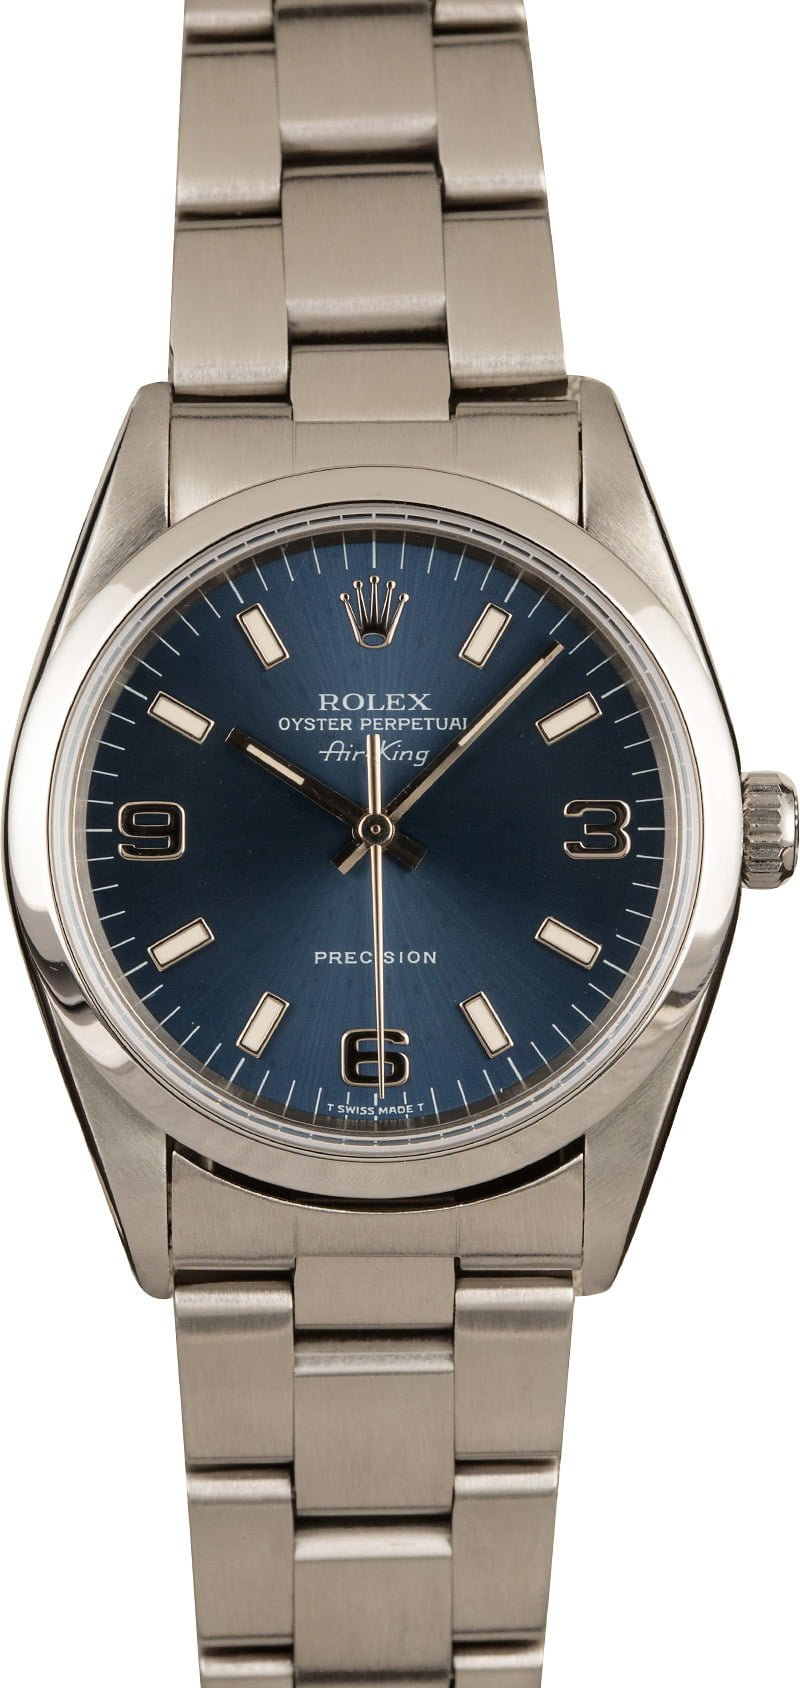 Rolex Air-King 40 vs 34 Comparison Guide 14000 Blue Dial